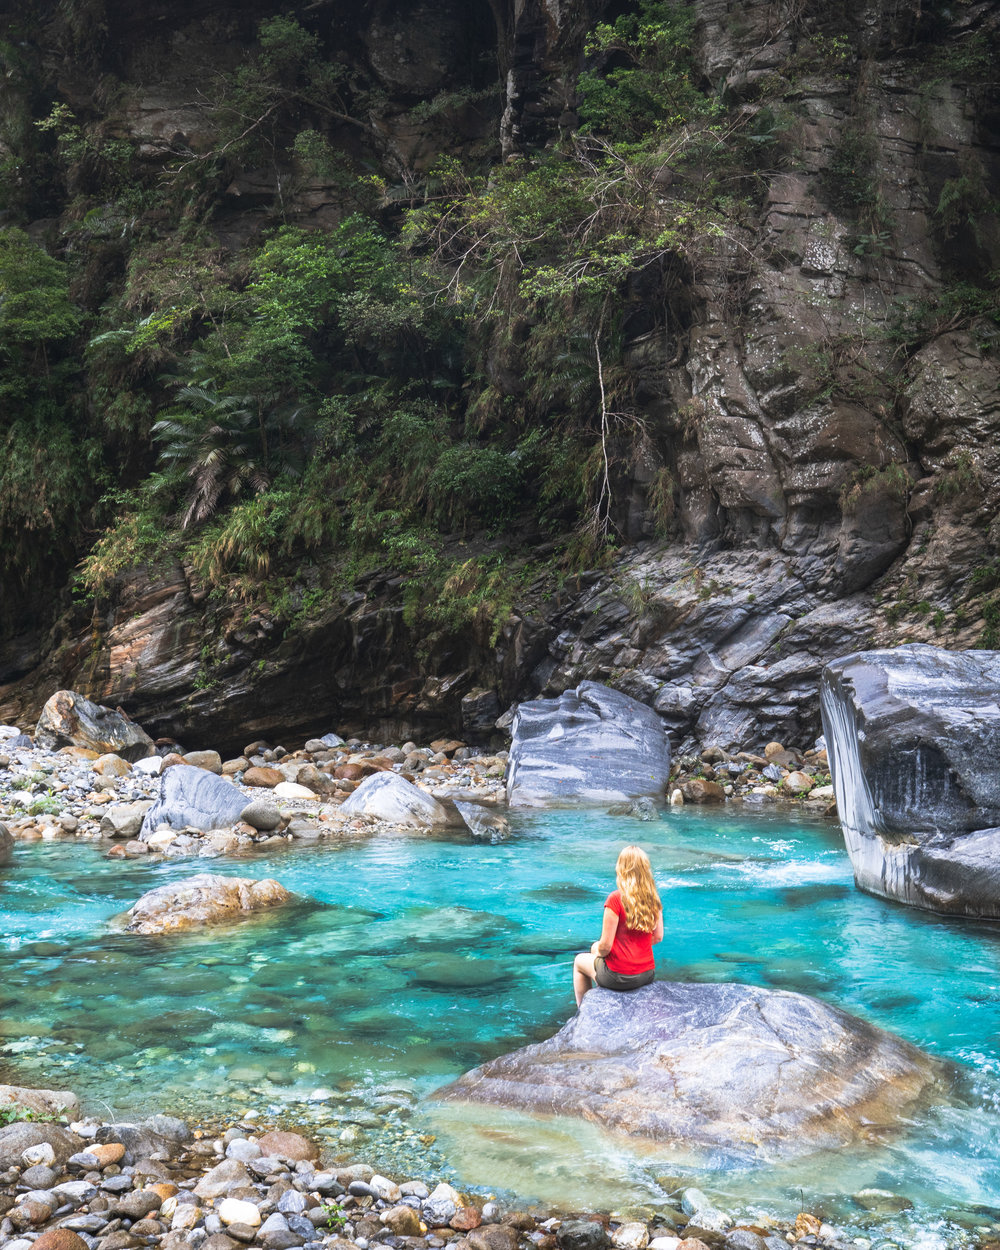 Photography spots in Taiwan - Shakadang Walk in Taroko Gorge